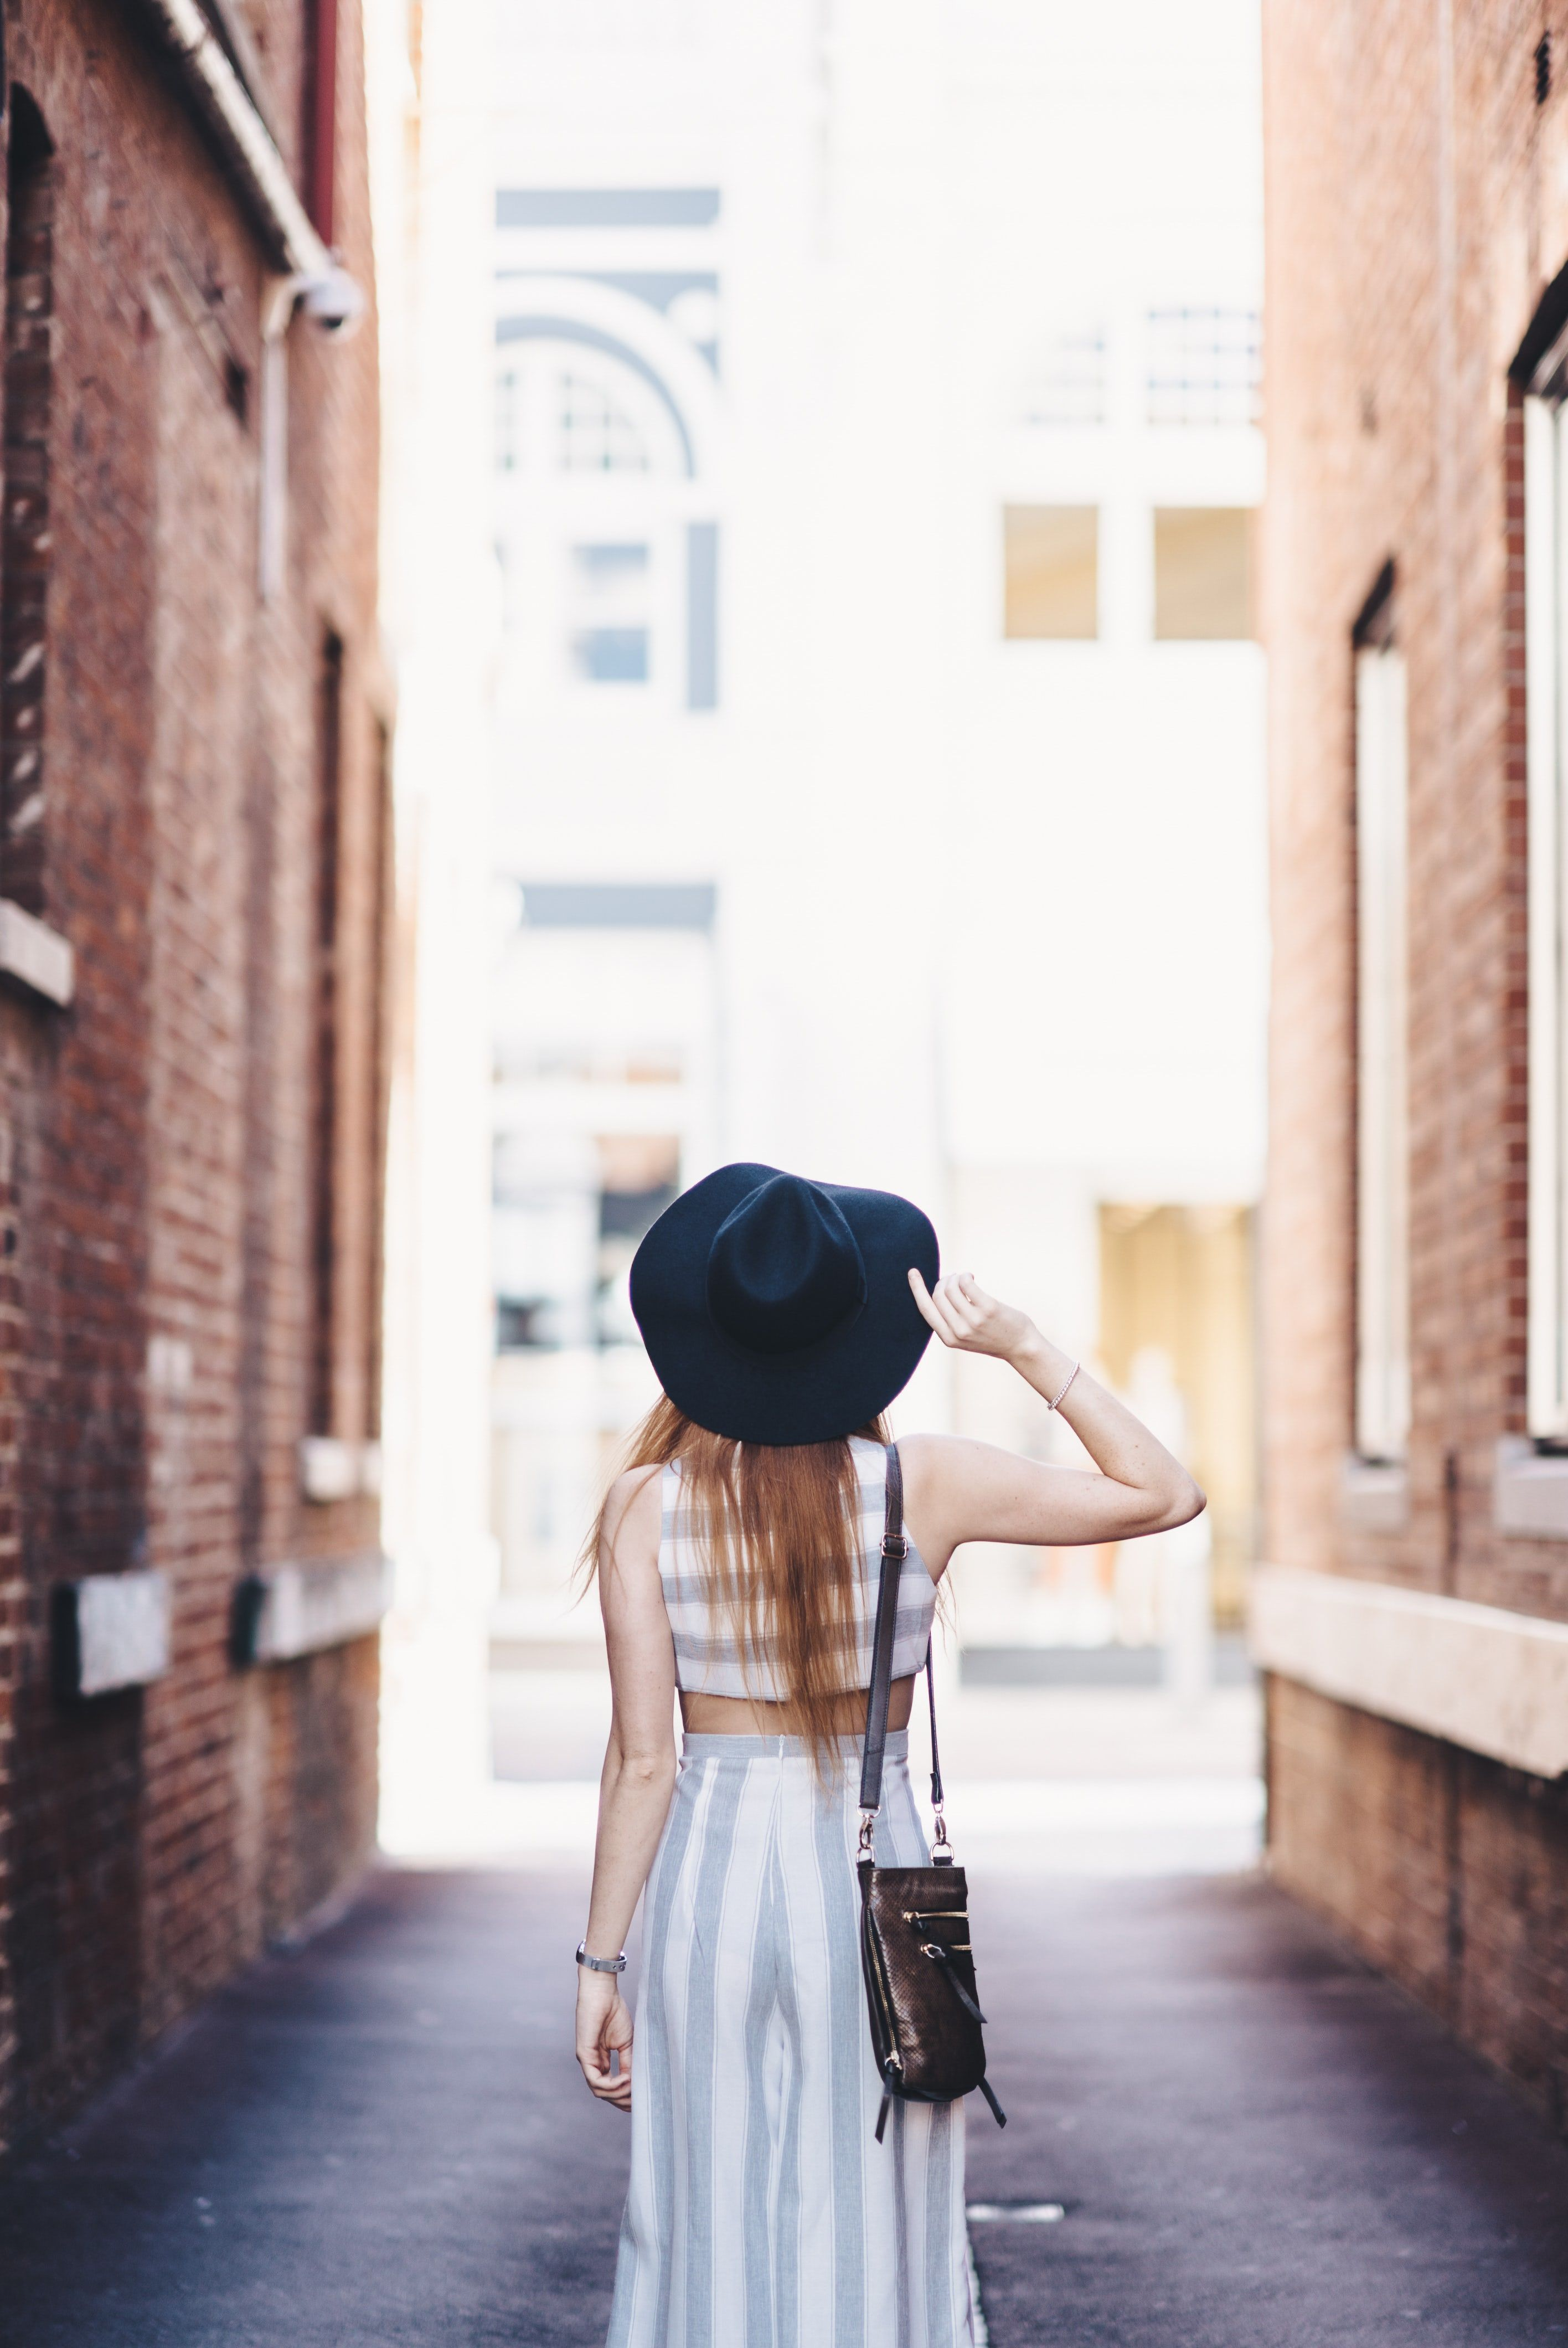 A woman in a hat walks away from the camera in an alleyway